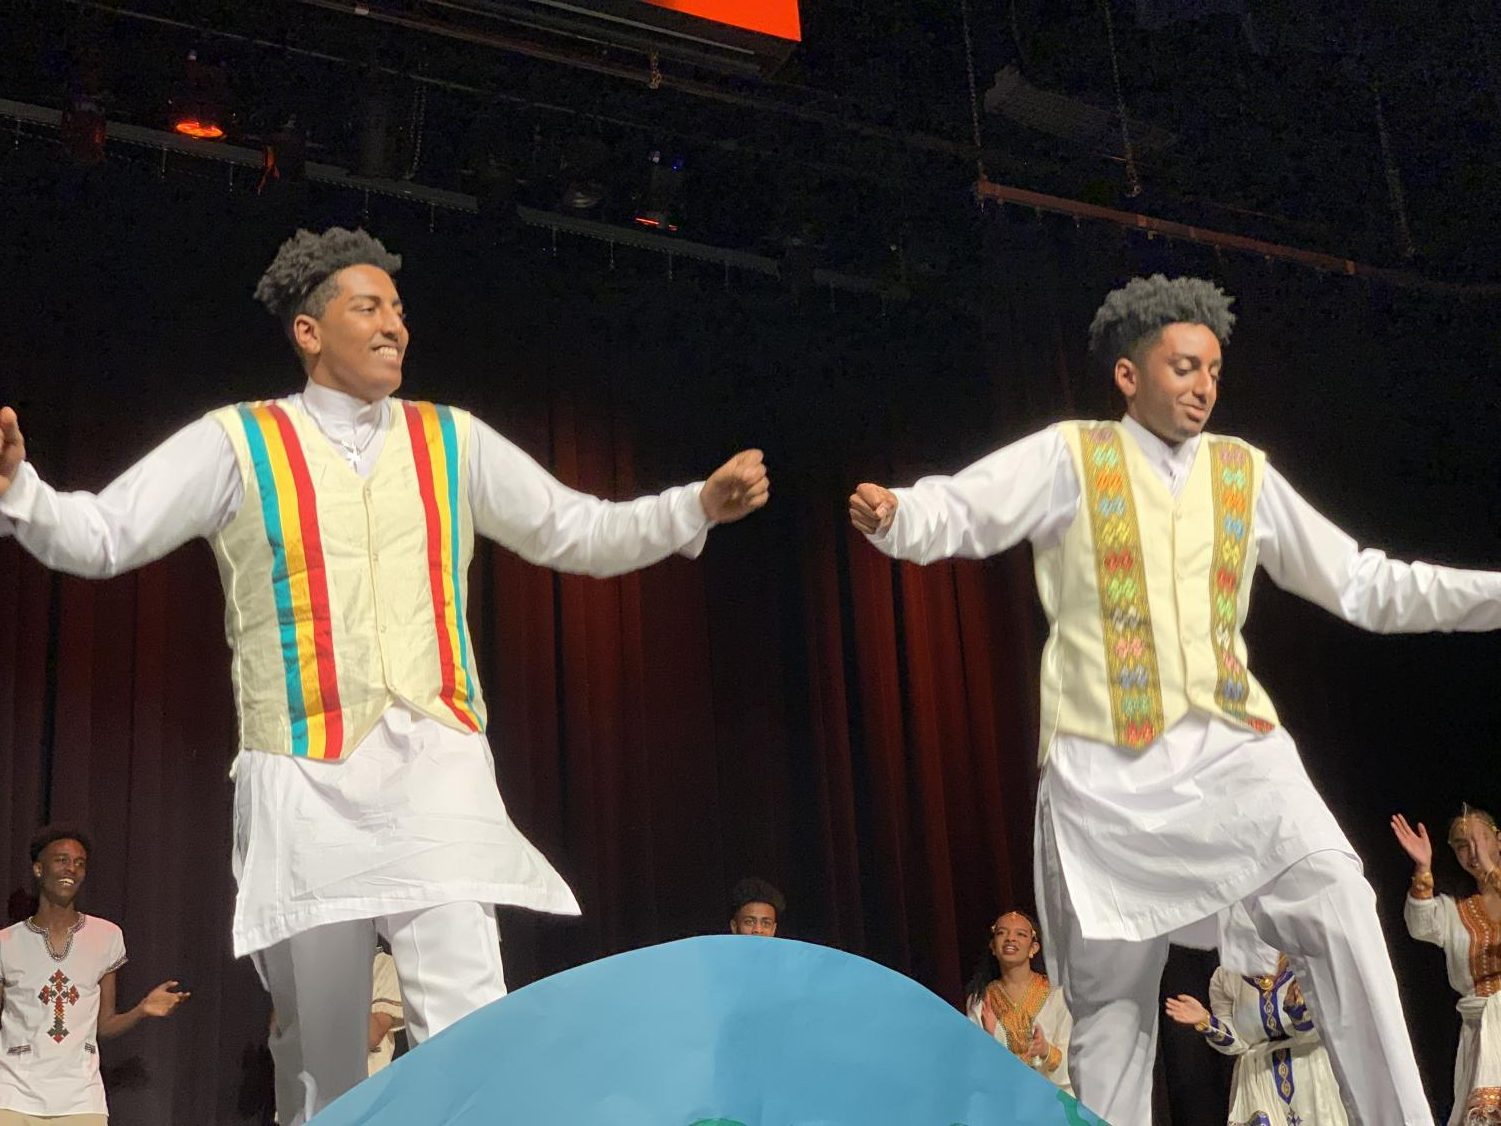 Junior Kaleab Mengistu (Left) and senior Jonathan Assefa (Right) dance on stage as part of the Habesha performance.